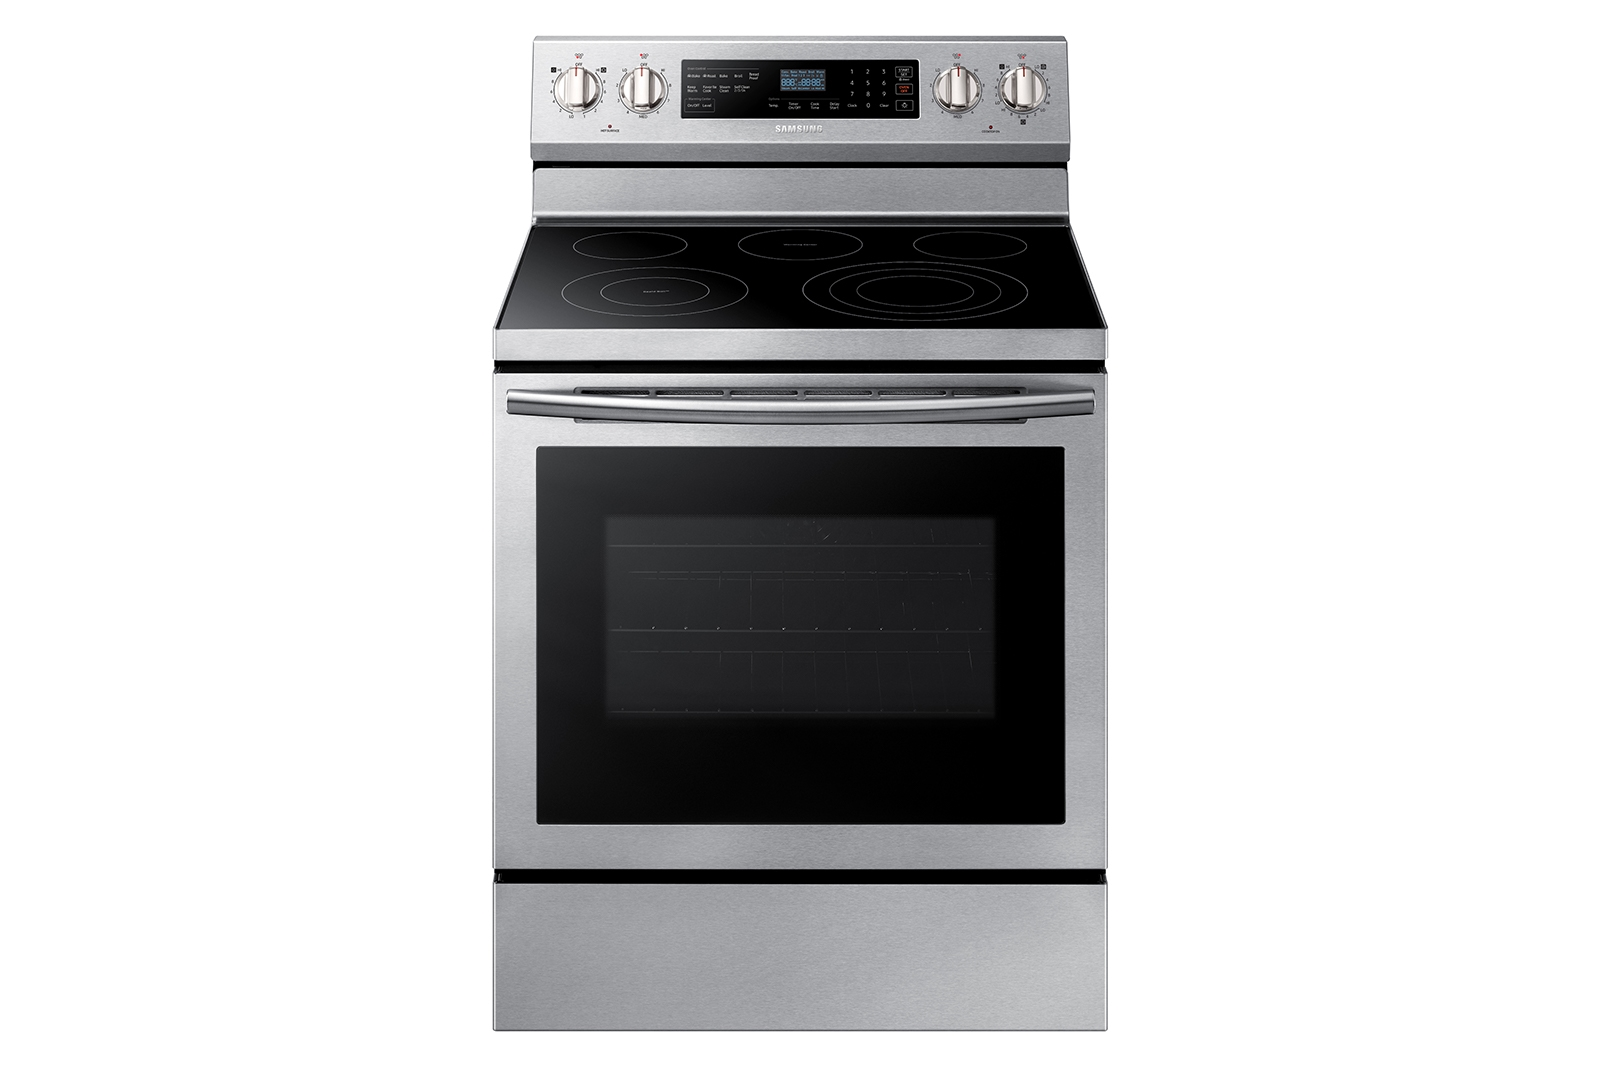 Freestanding Electric Range With True Convection Ranges Ne59n6630ss Aa Samsung Us